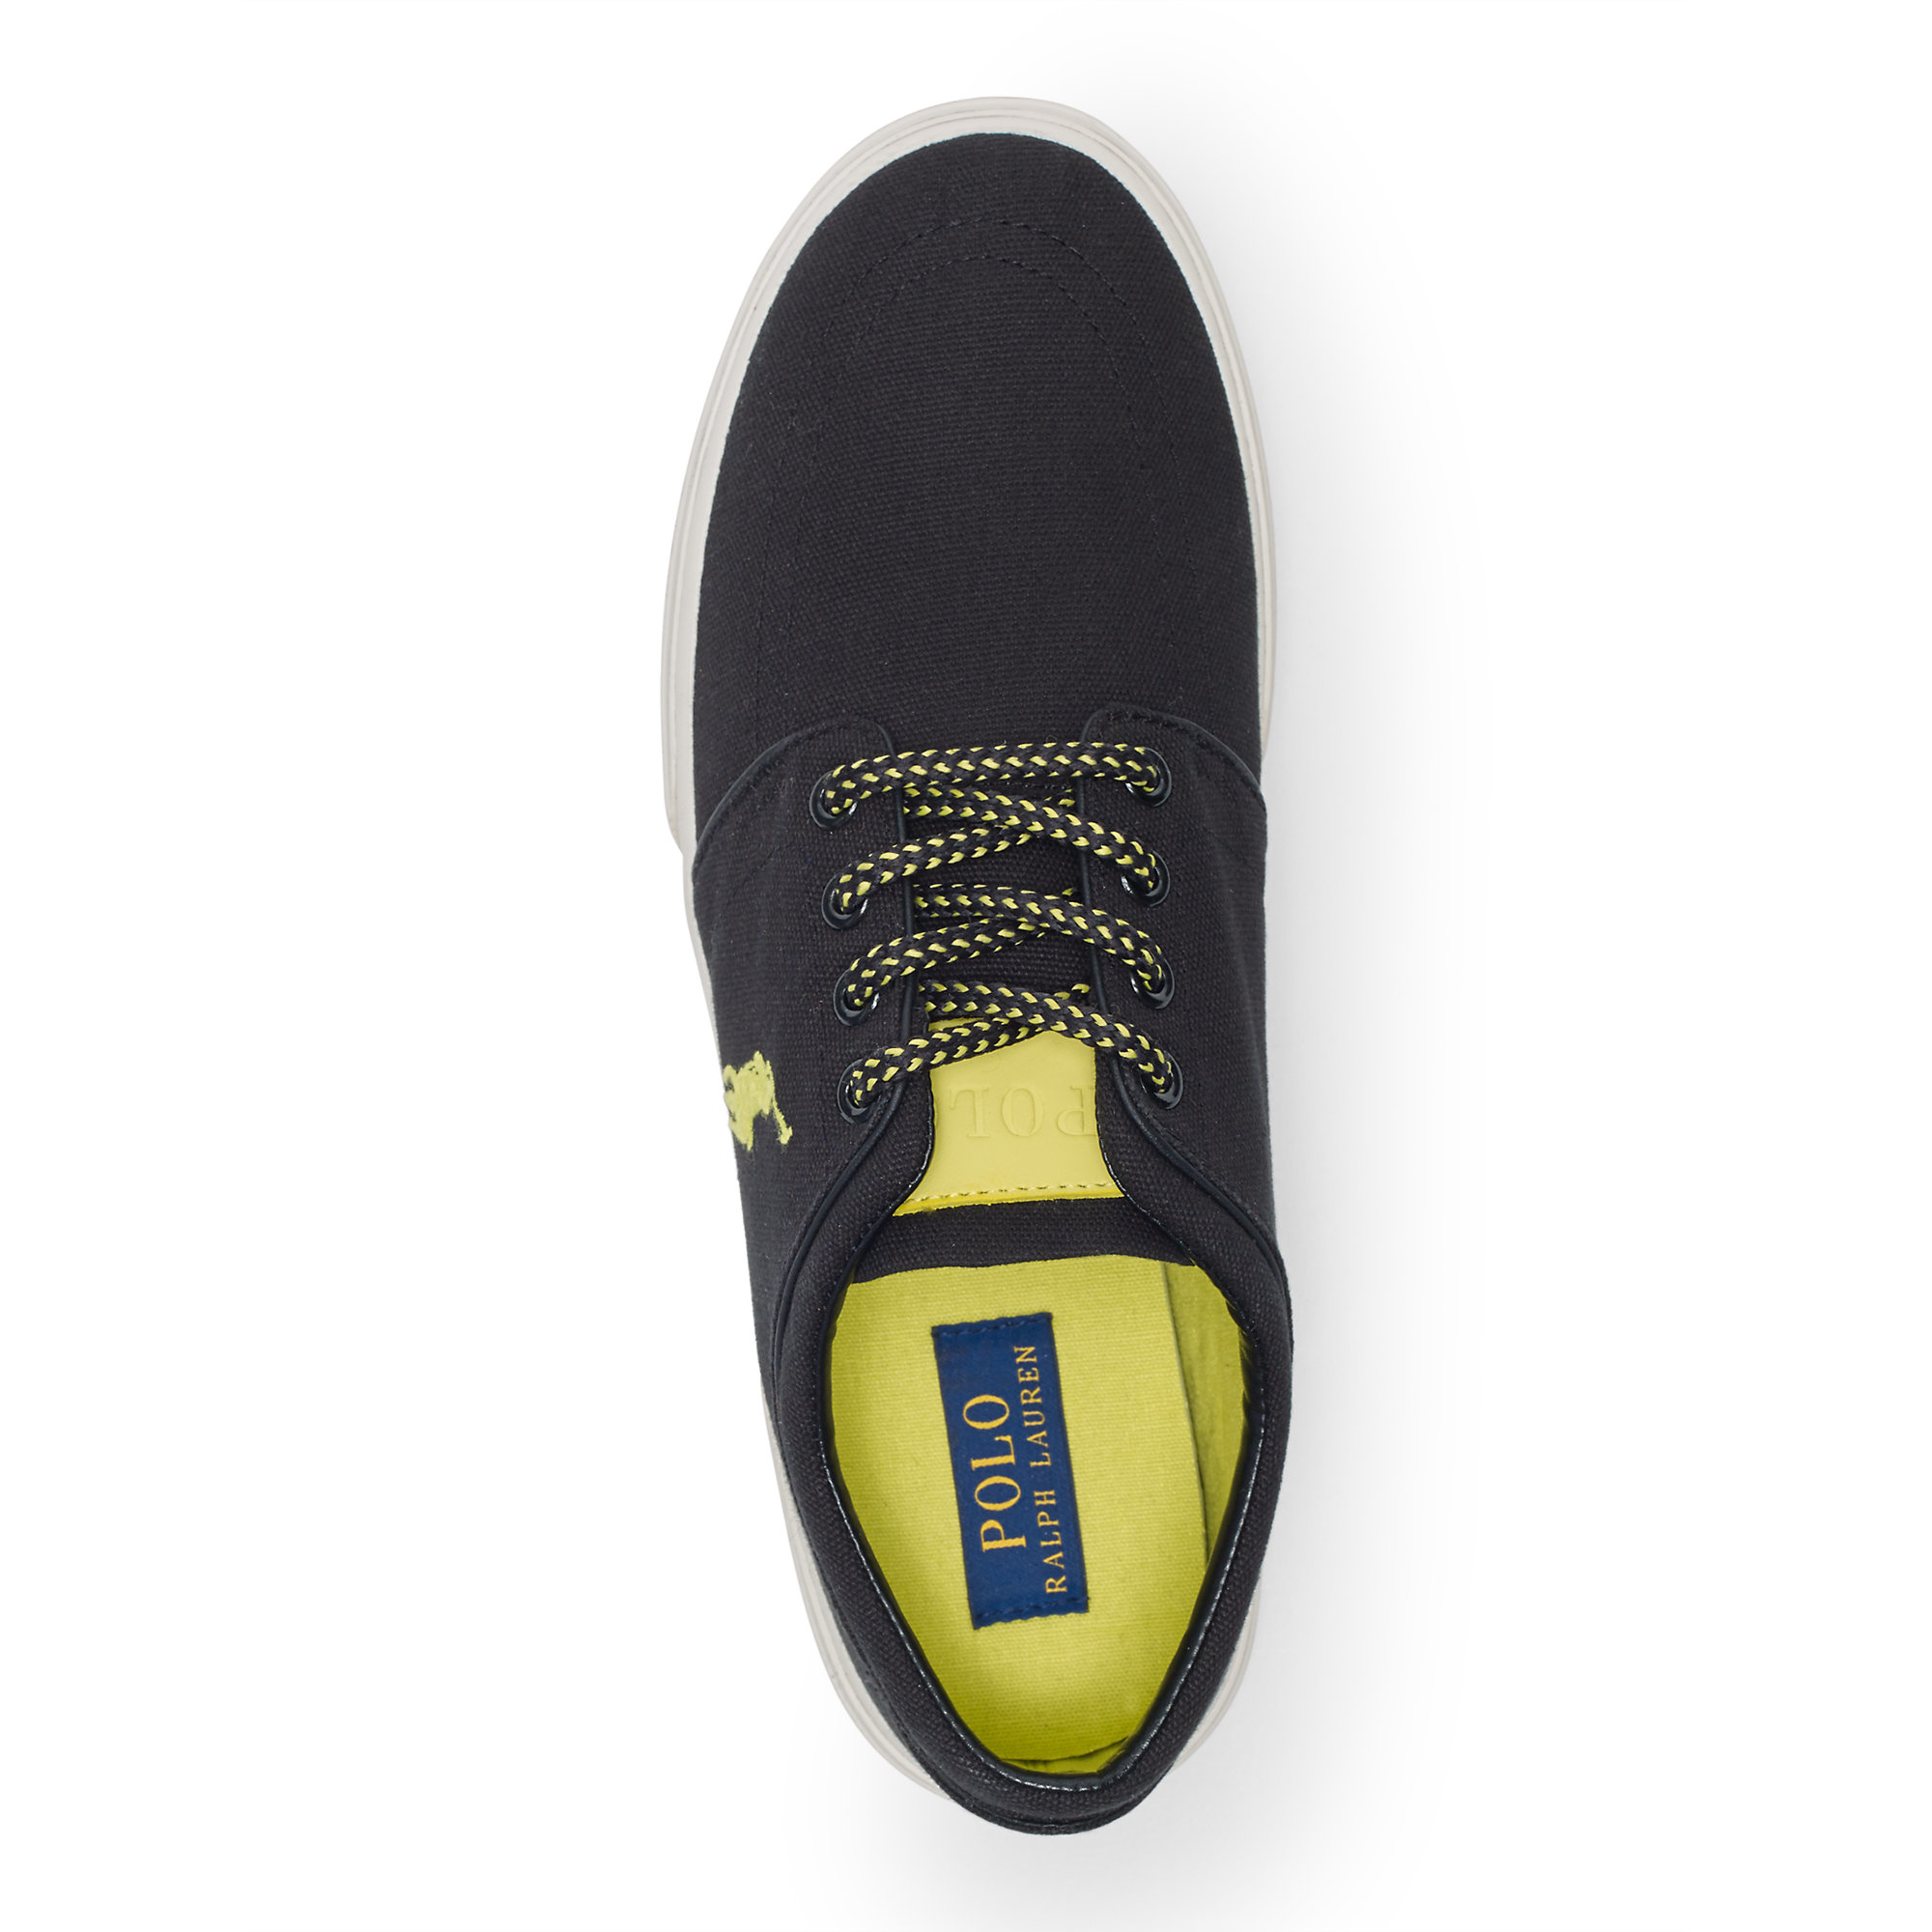 c3eb2cadbc0f0 Lyst - Polo Ralph Lauren Faxon Canvas Low Sneaker in Black for Men